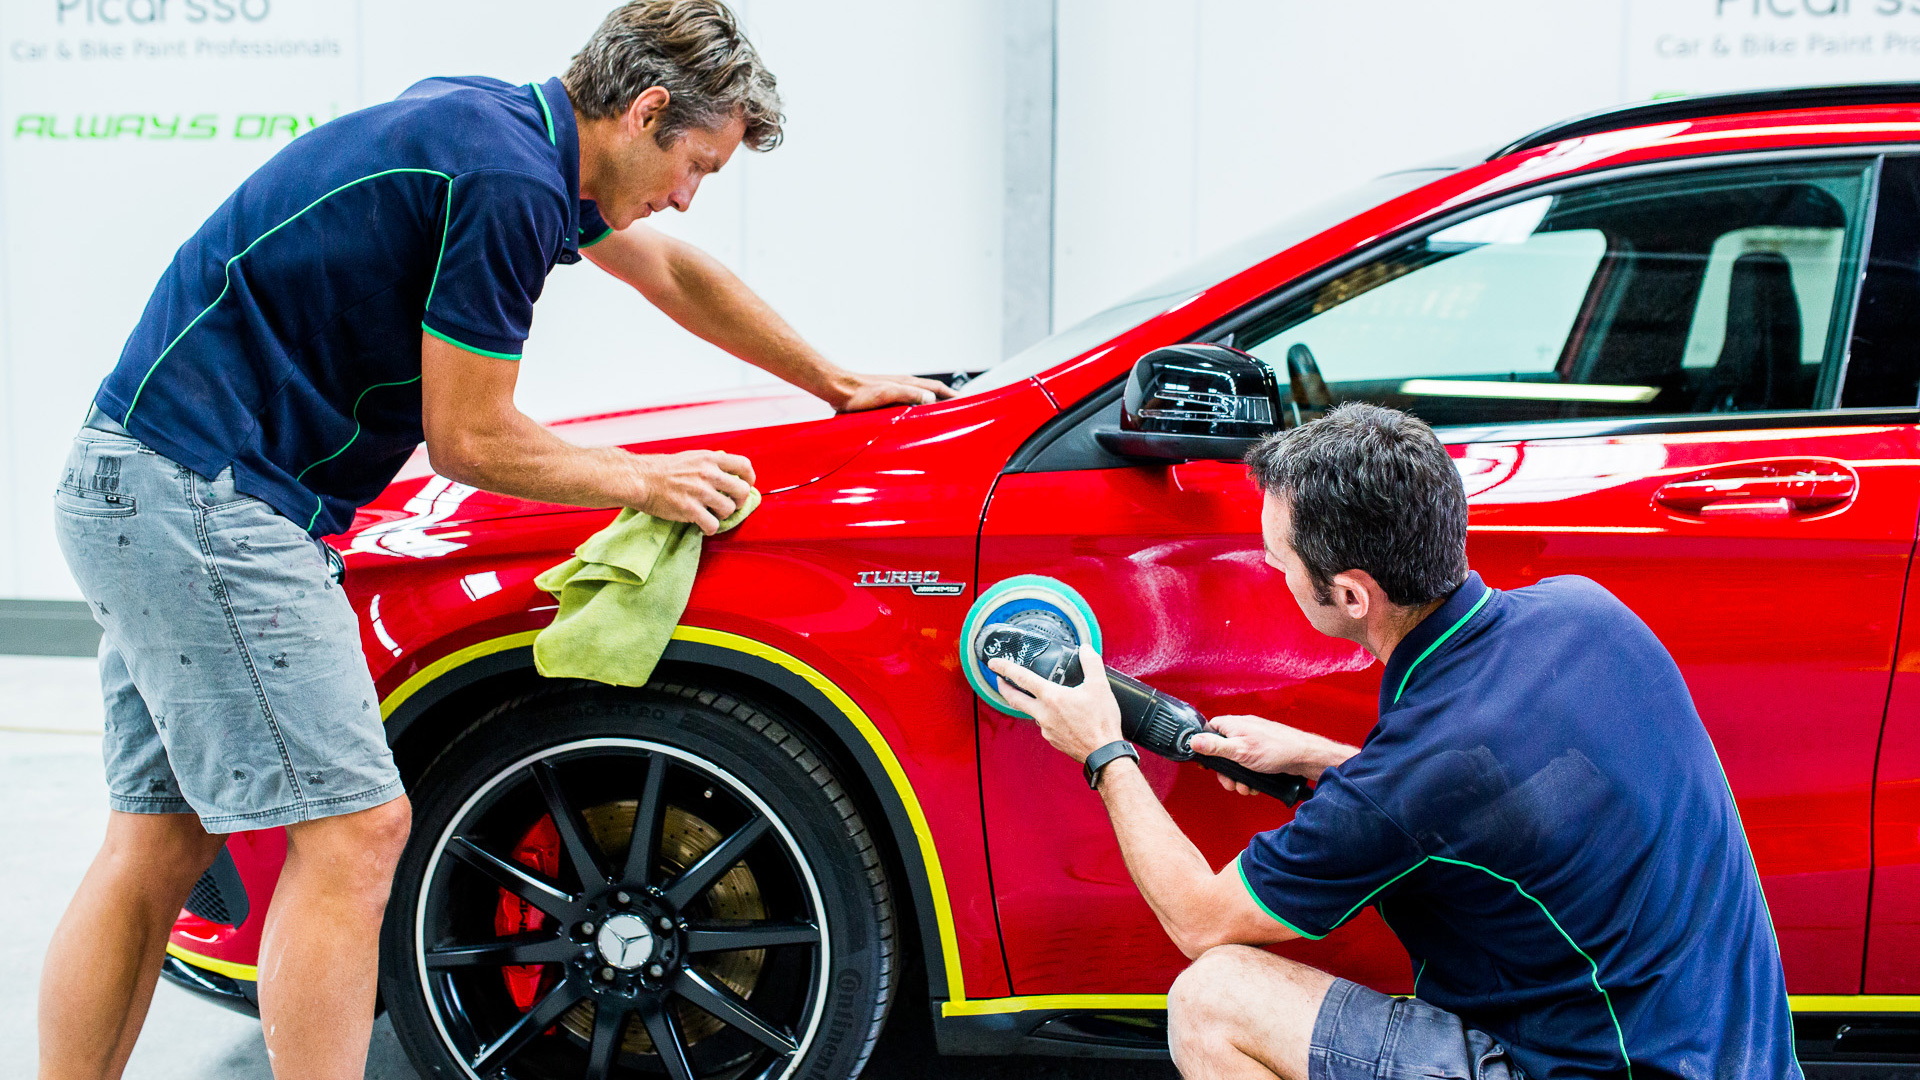 picarsso hero of car paint protection